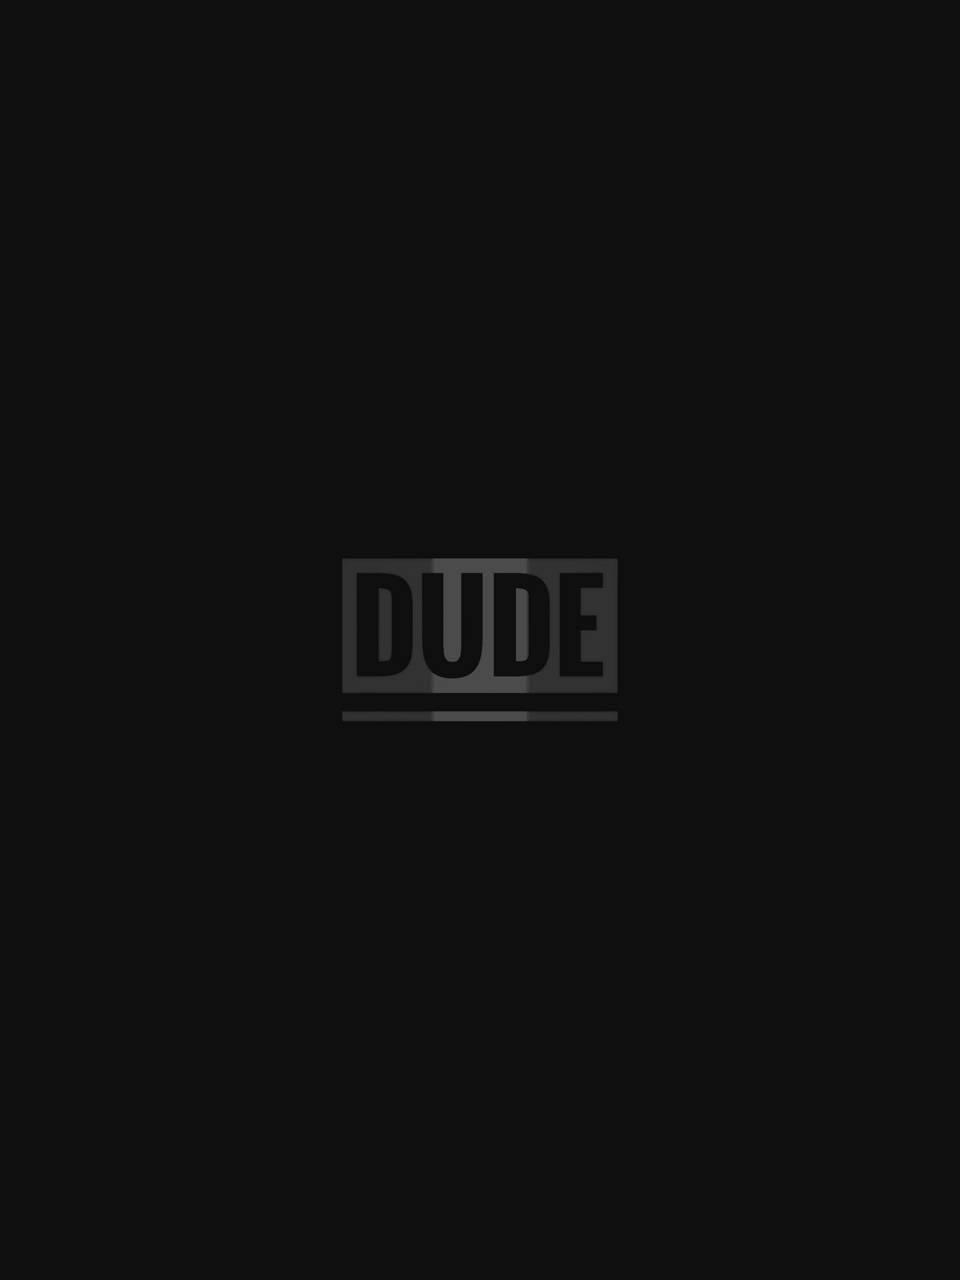 DUDE wallpaper by AsHSz - 20 - Free on ...